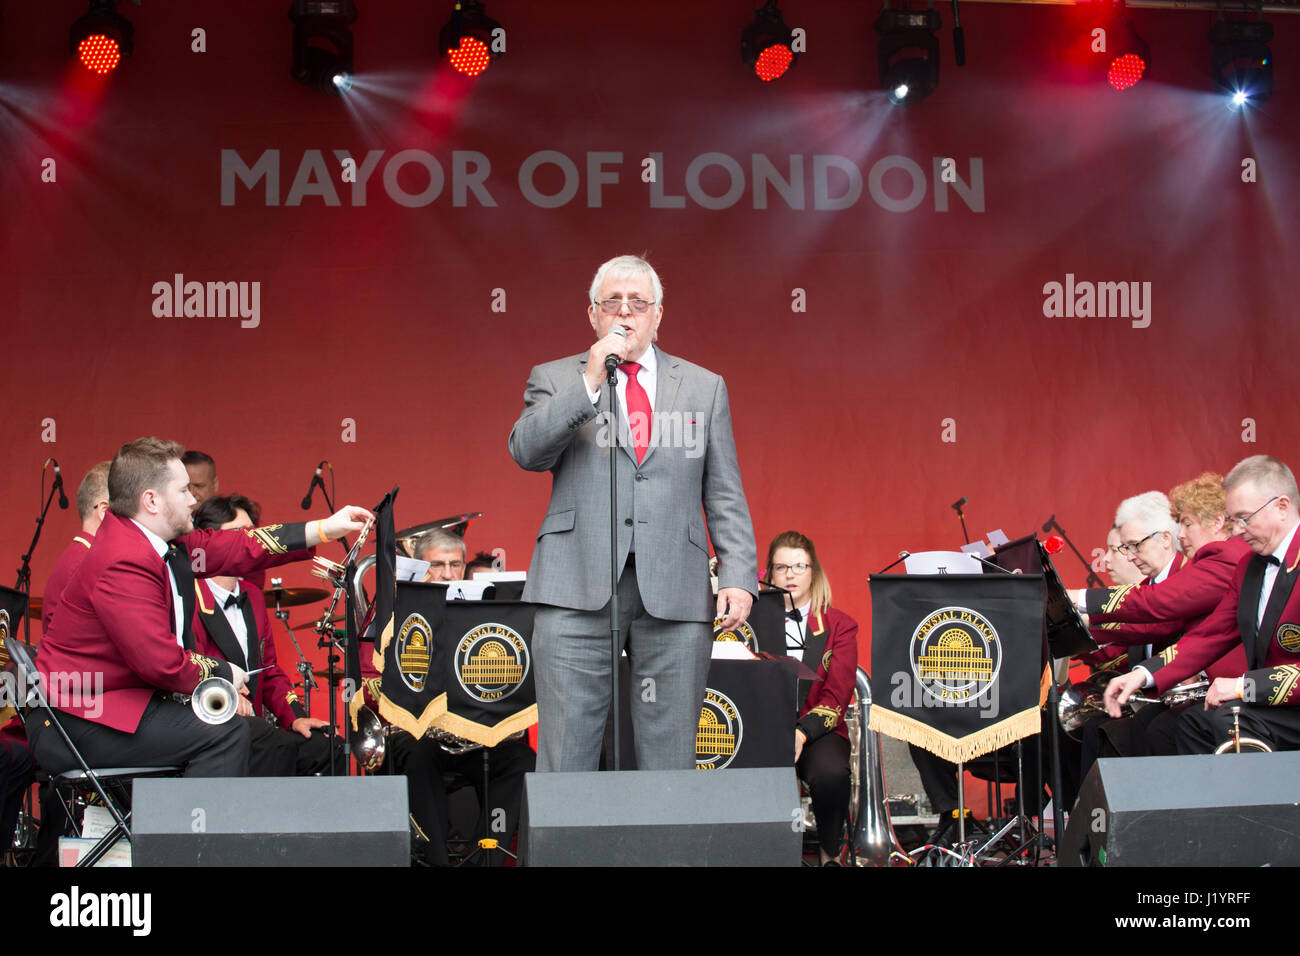 London, UK. 22nd April, 2017. Credit: Chris Pig Photography/Alamy Live News - Stock Image